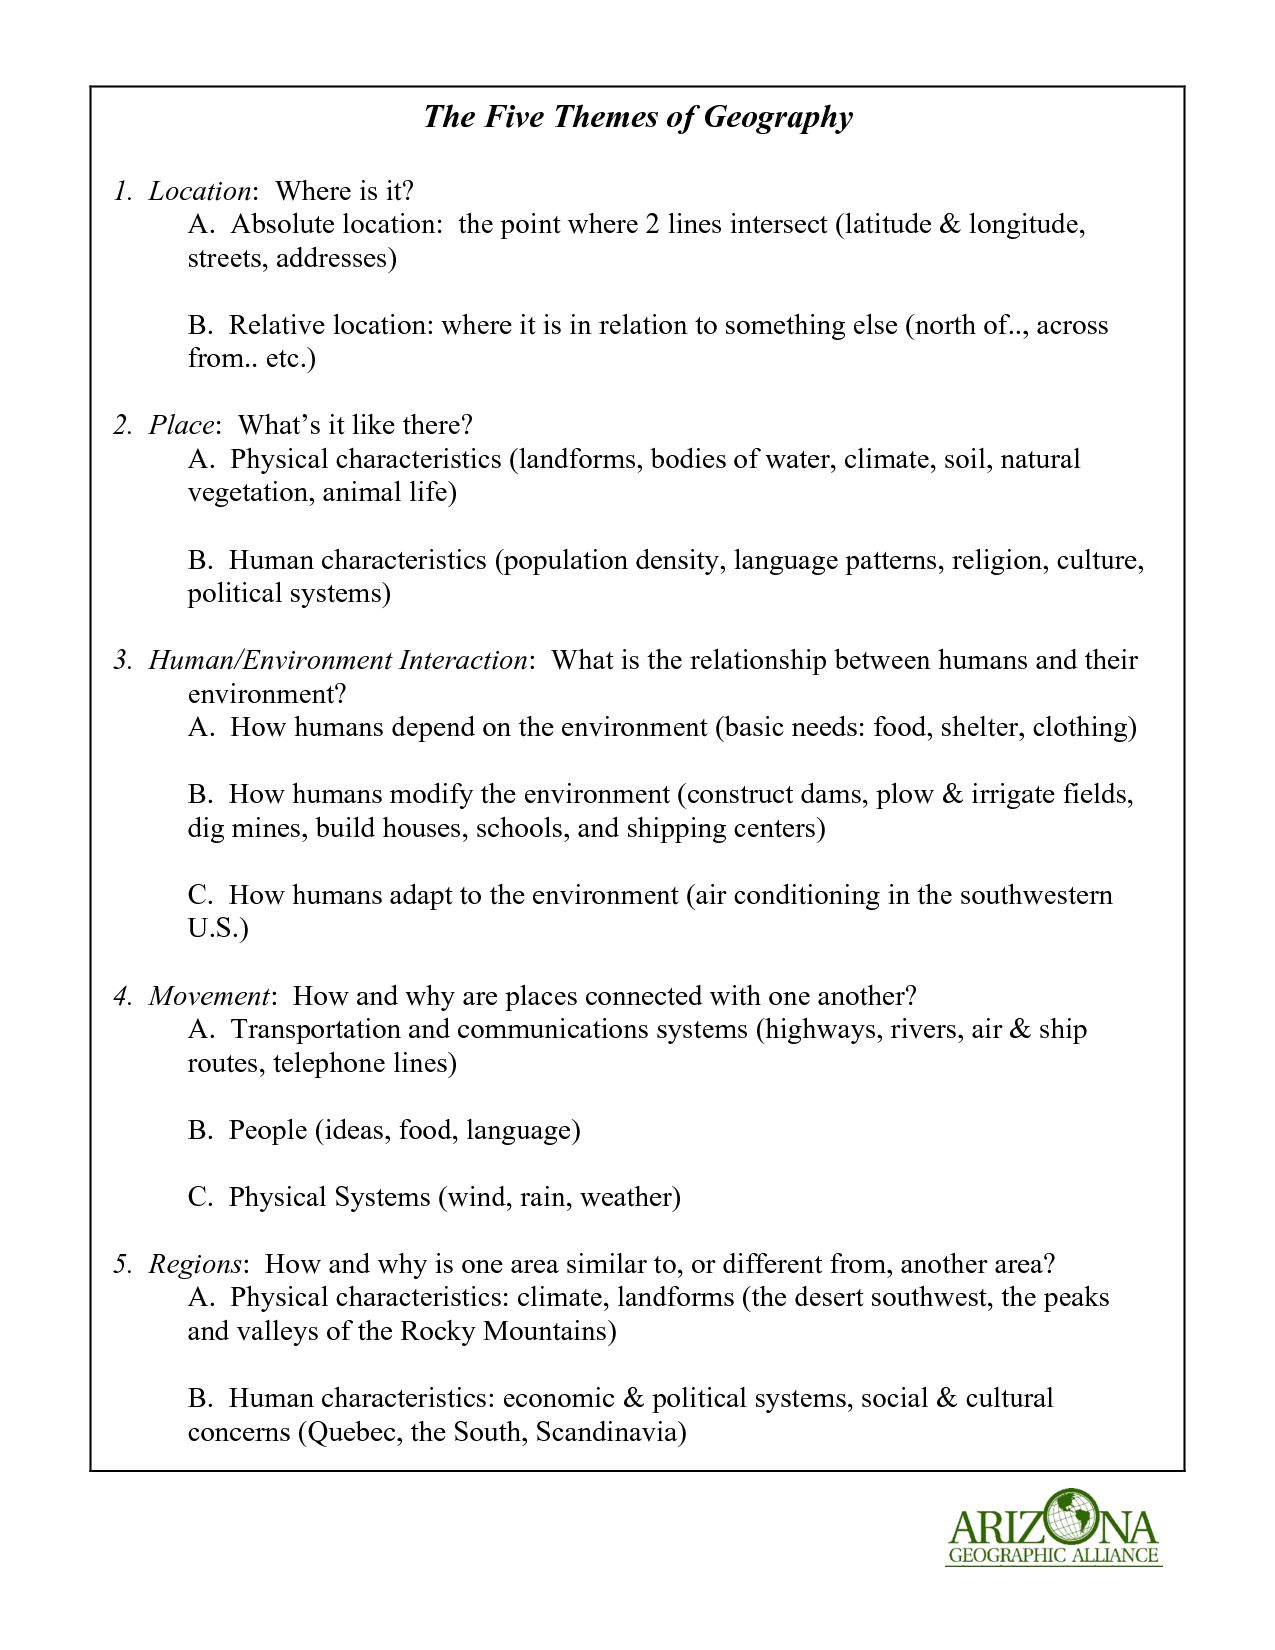 Worksheets Physical Geography Worksheets 5 themes of geography printable 18 best images five worksheets